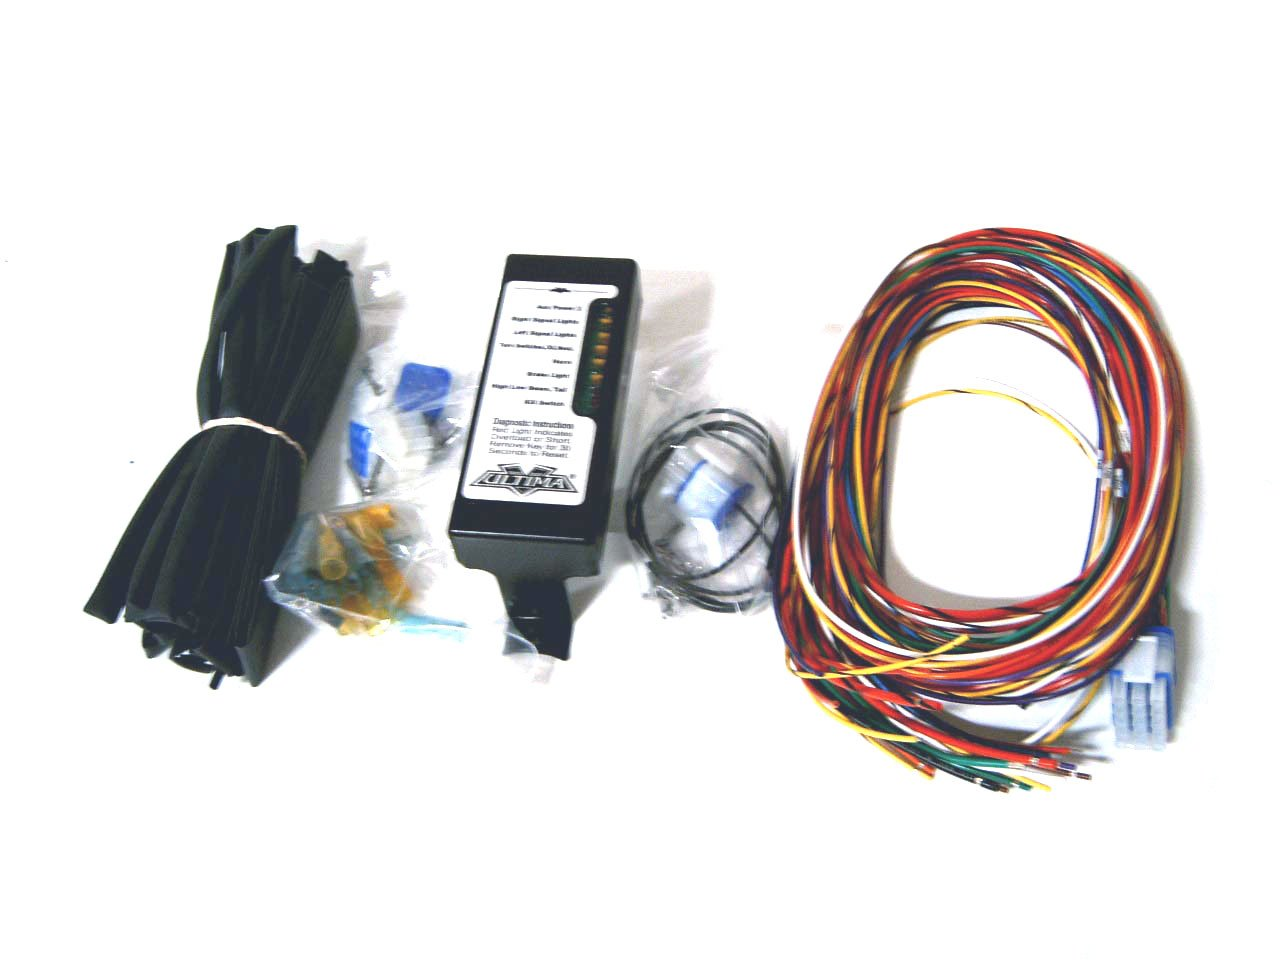 61DV2Bq5%2BHL._SL1280_ amazon com ultima complete wiring harness kit for harley davidson where to buy a trailer wiring harness at cita.asia